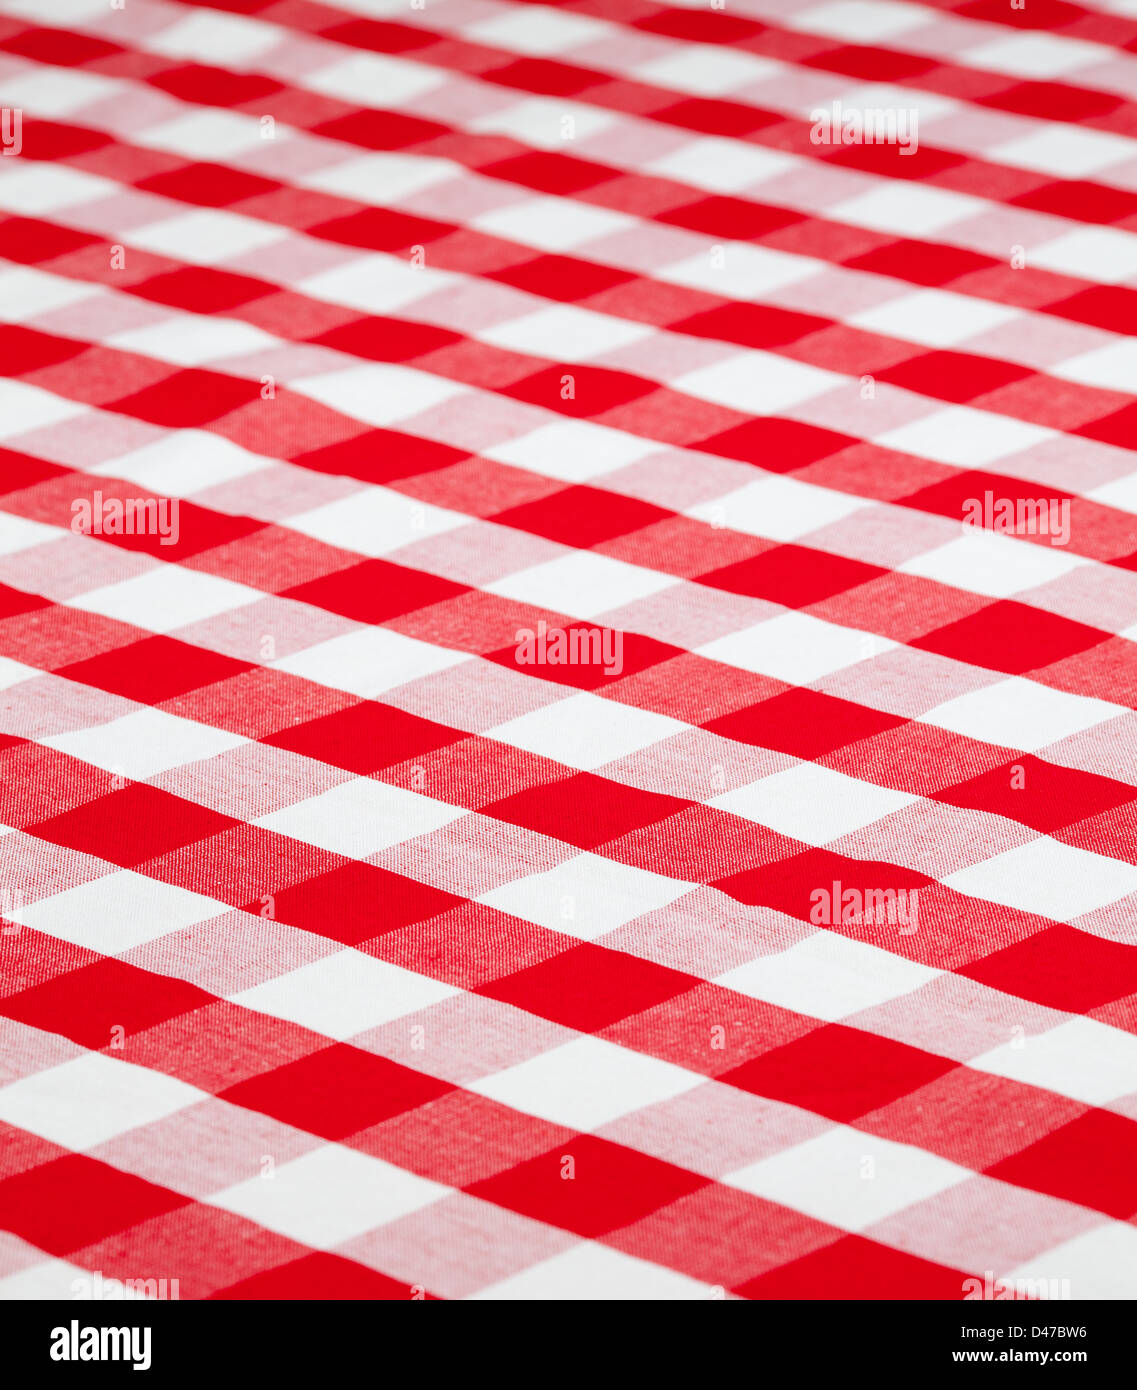 red checked fabric tablecloth - Stock Image